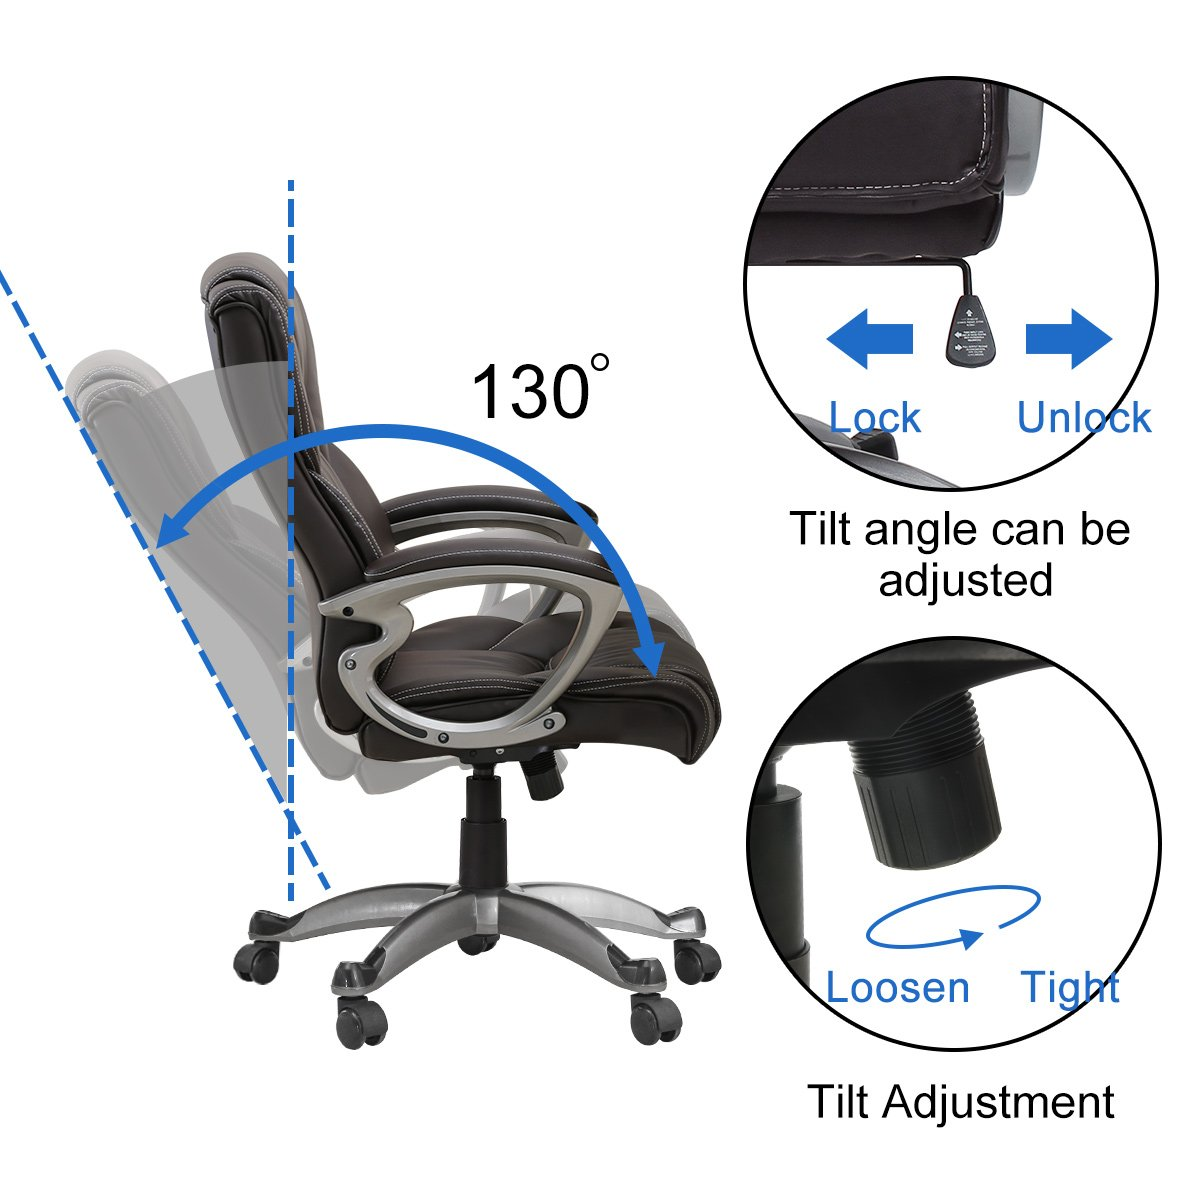 Yamasoro Leather Office Chair High Back Computer Gaming Desk Chair Executive Ergonomic Lumbar Support Brown Chairs Sofas Office Furniture Accessories